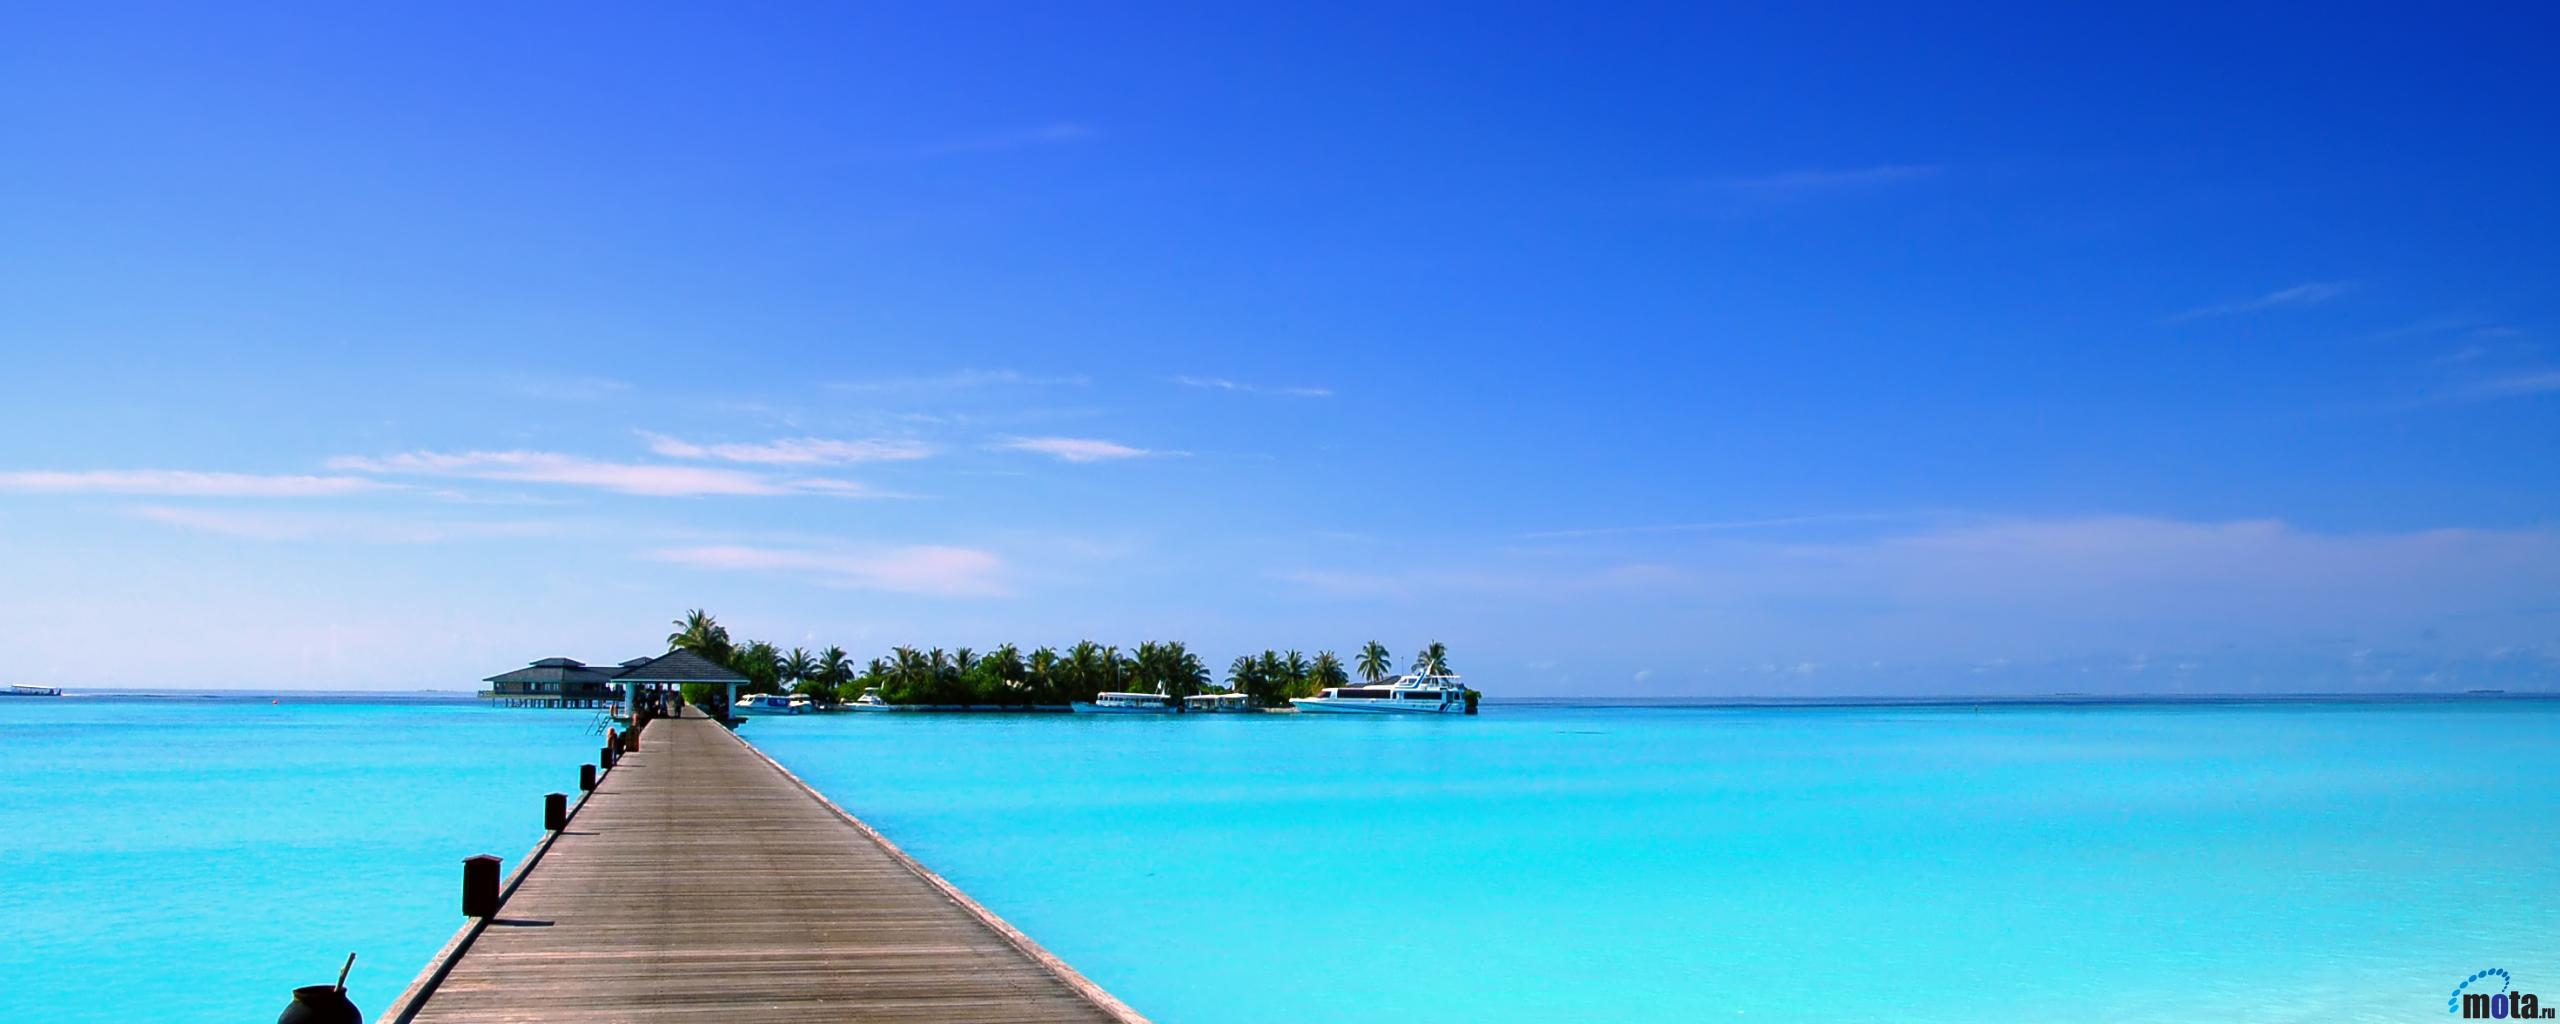 Maldives Tropical Beach Island Hd Wallpaper 793 Wallpaper 2560x1024